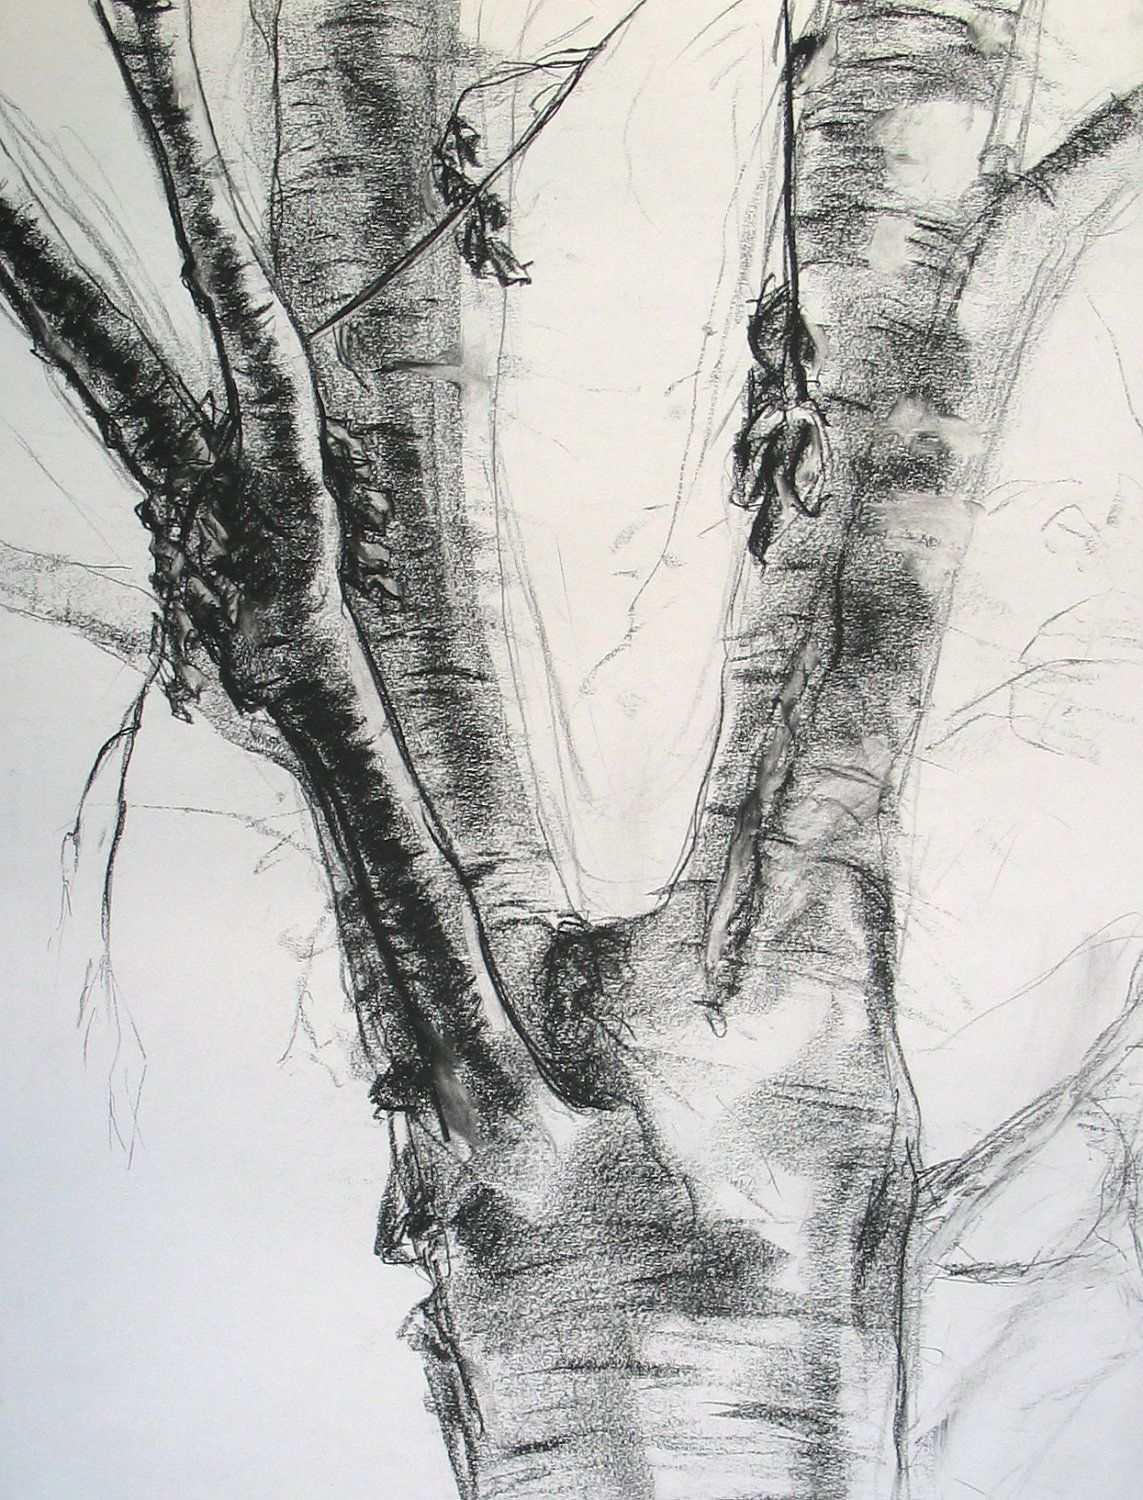 Tree Charcoal Drawing Trees 1 Charcoal Landscape Landscape Drawings Tree Drawing Charcoal Drawing